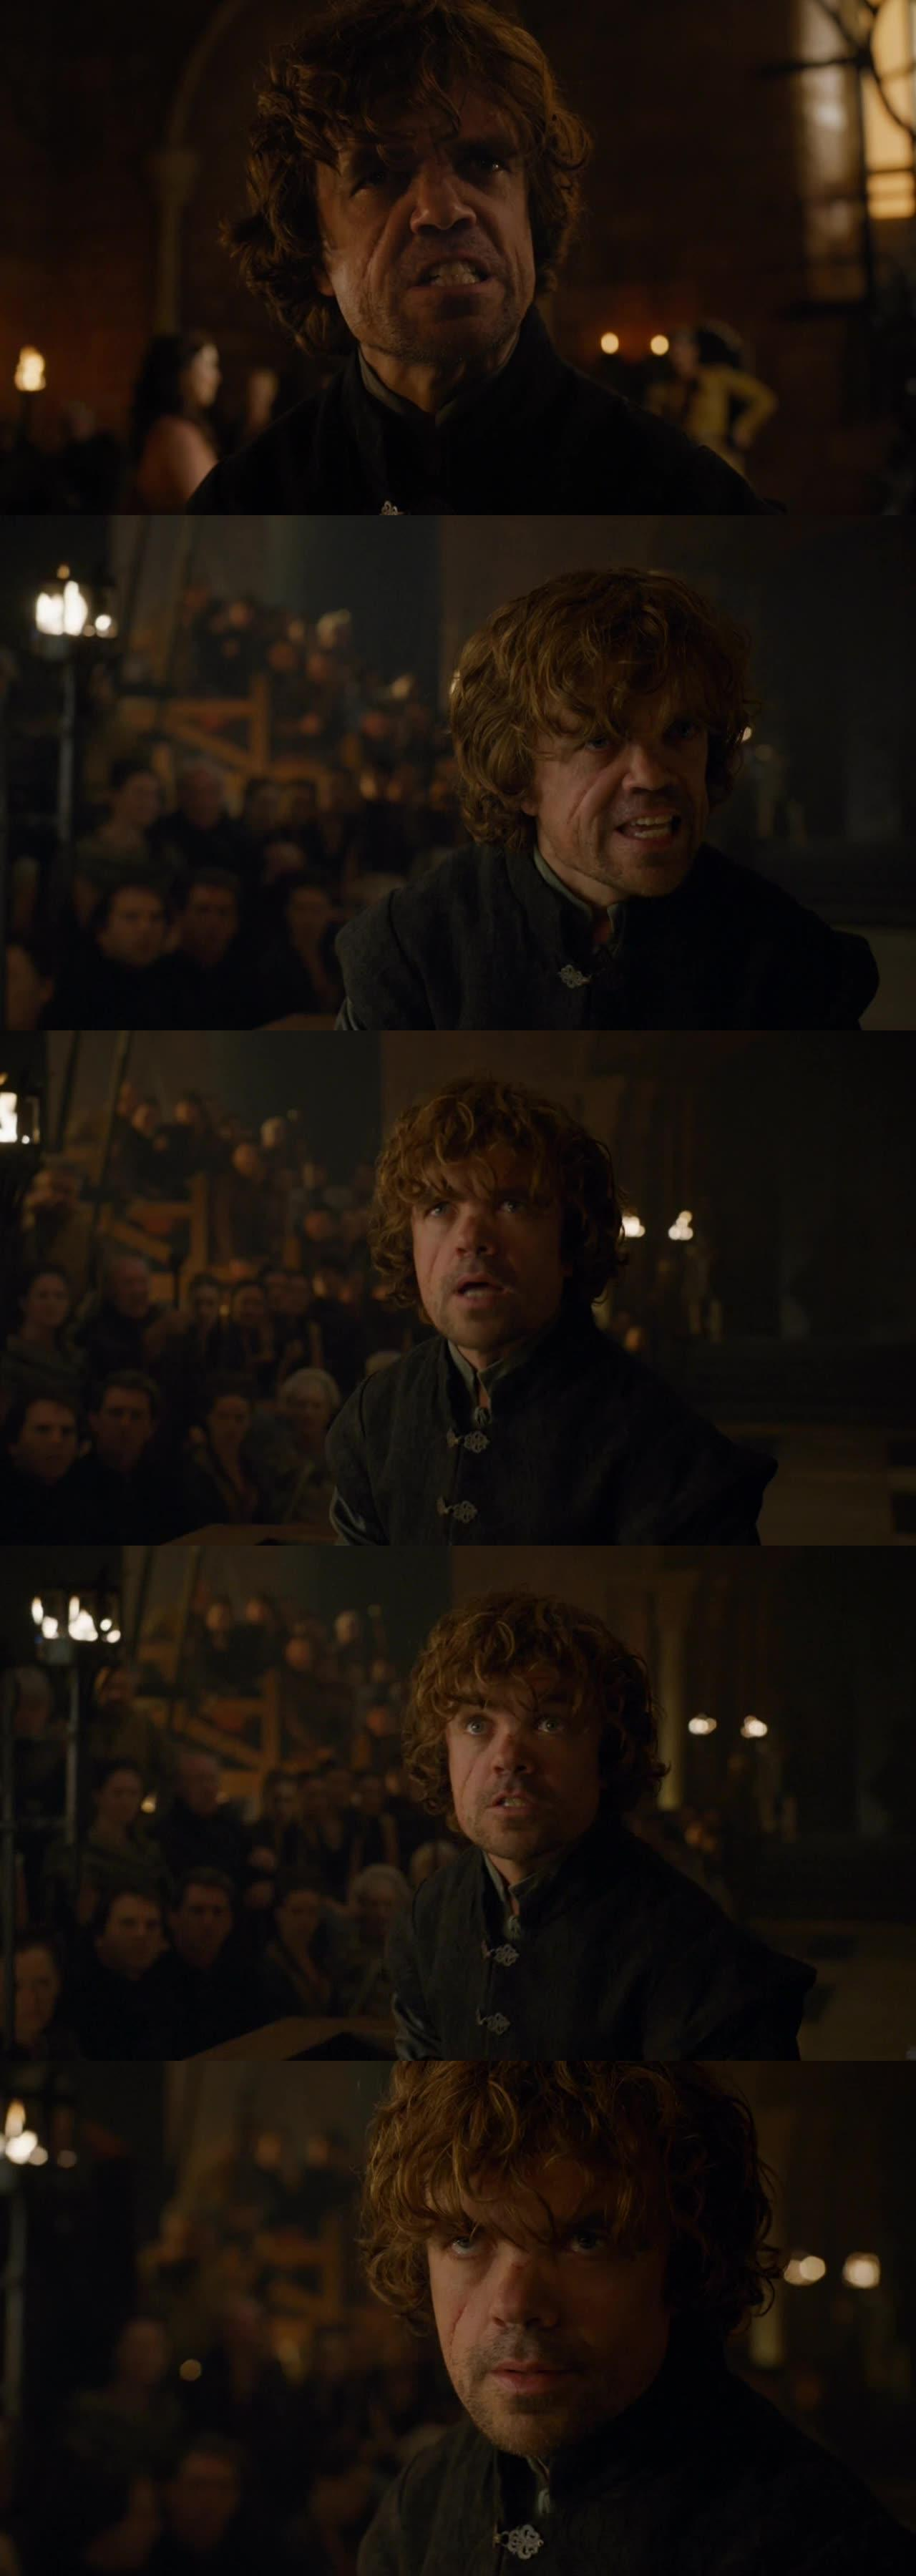 That moment when you realize that Peter Dinklage is going to win another EMMY...